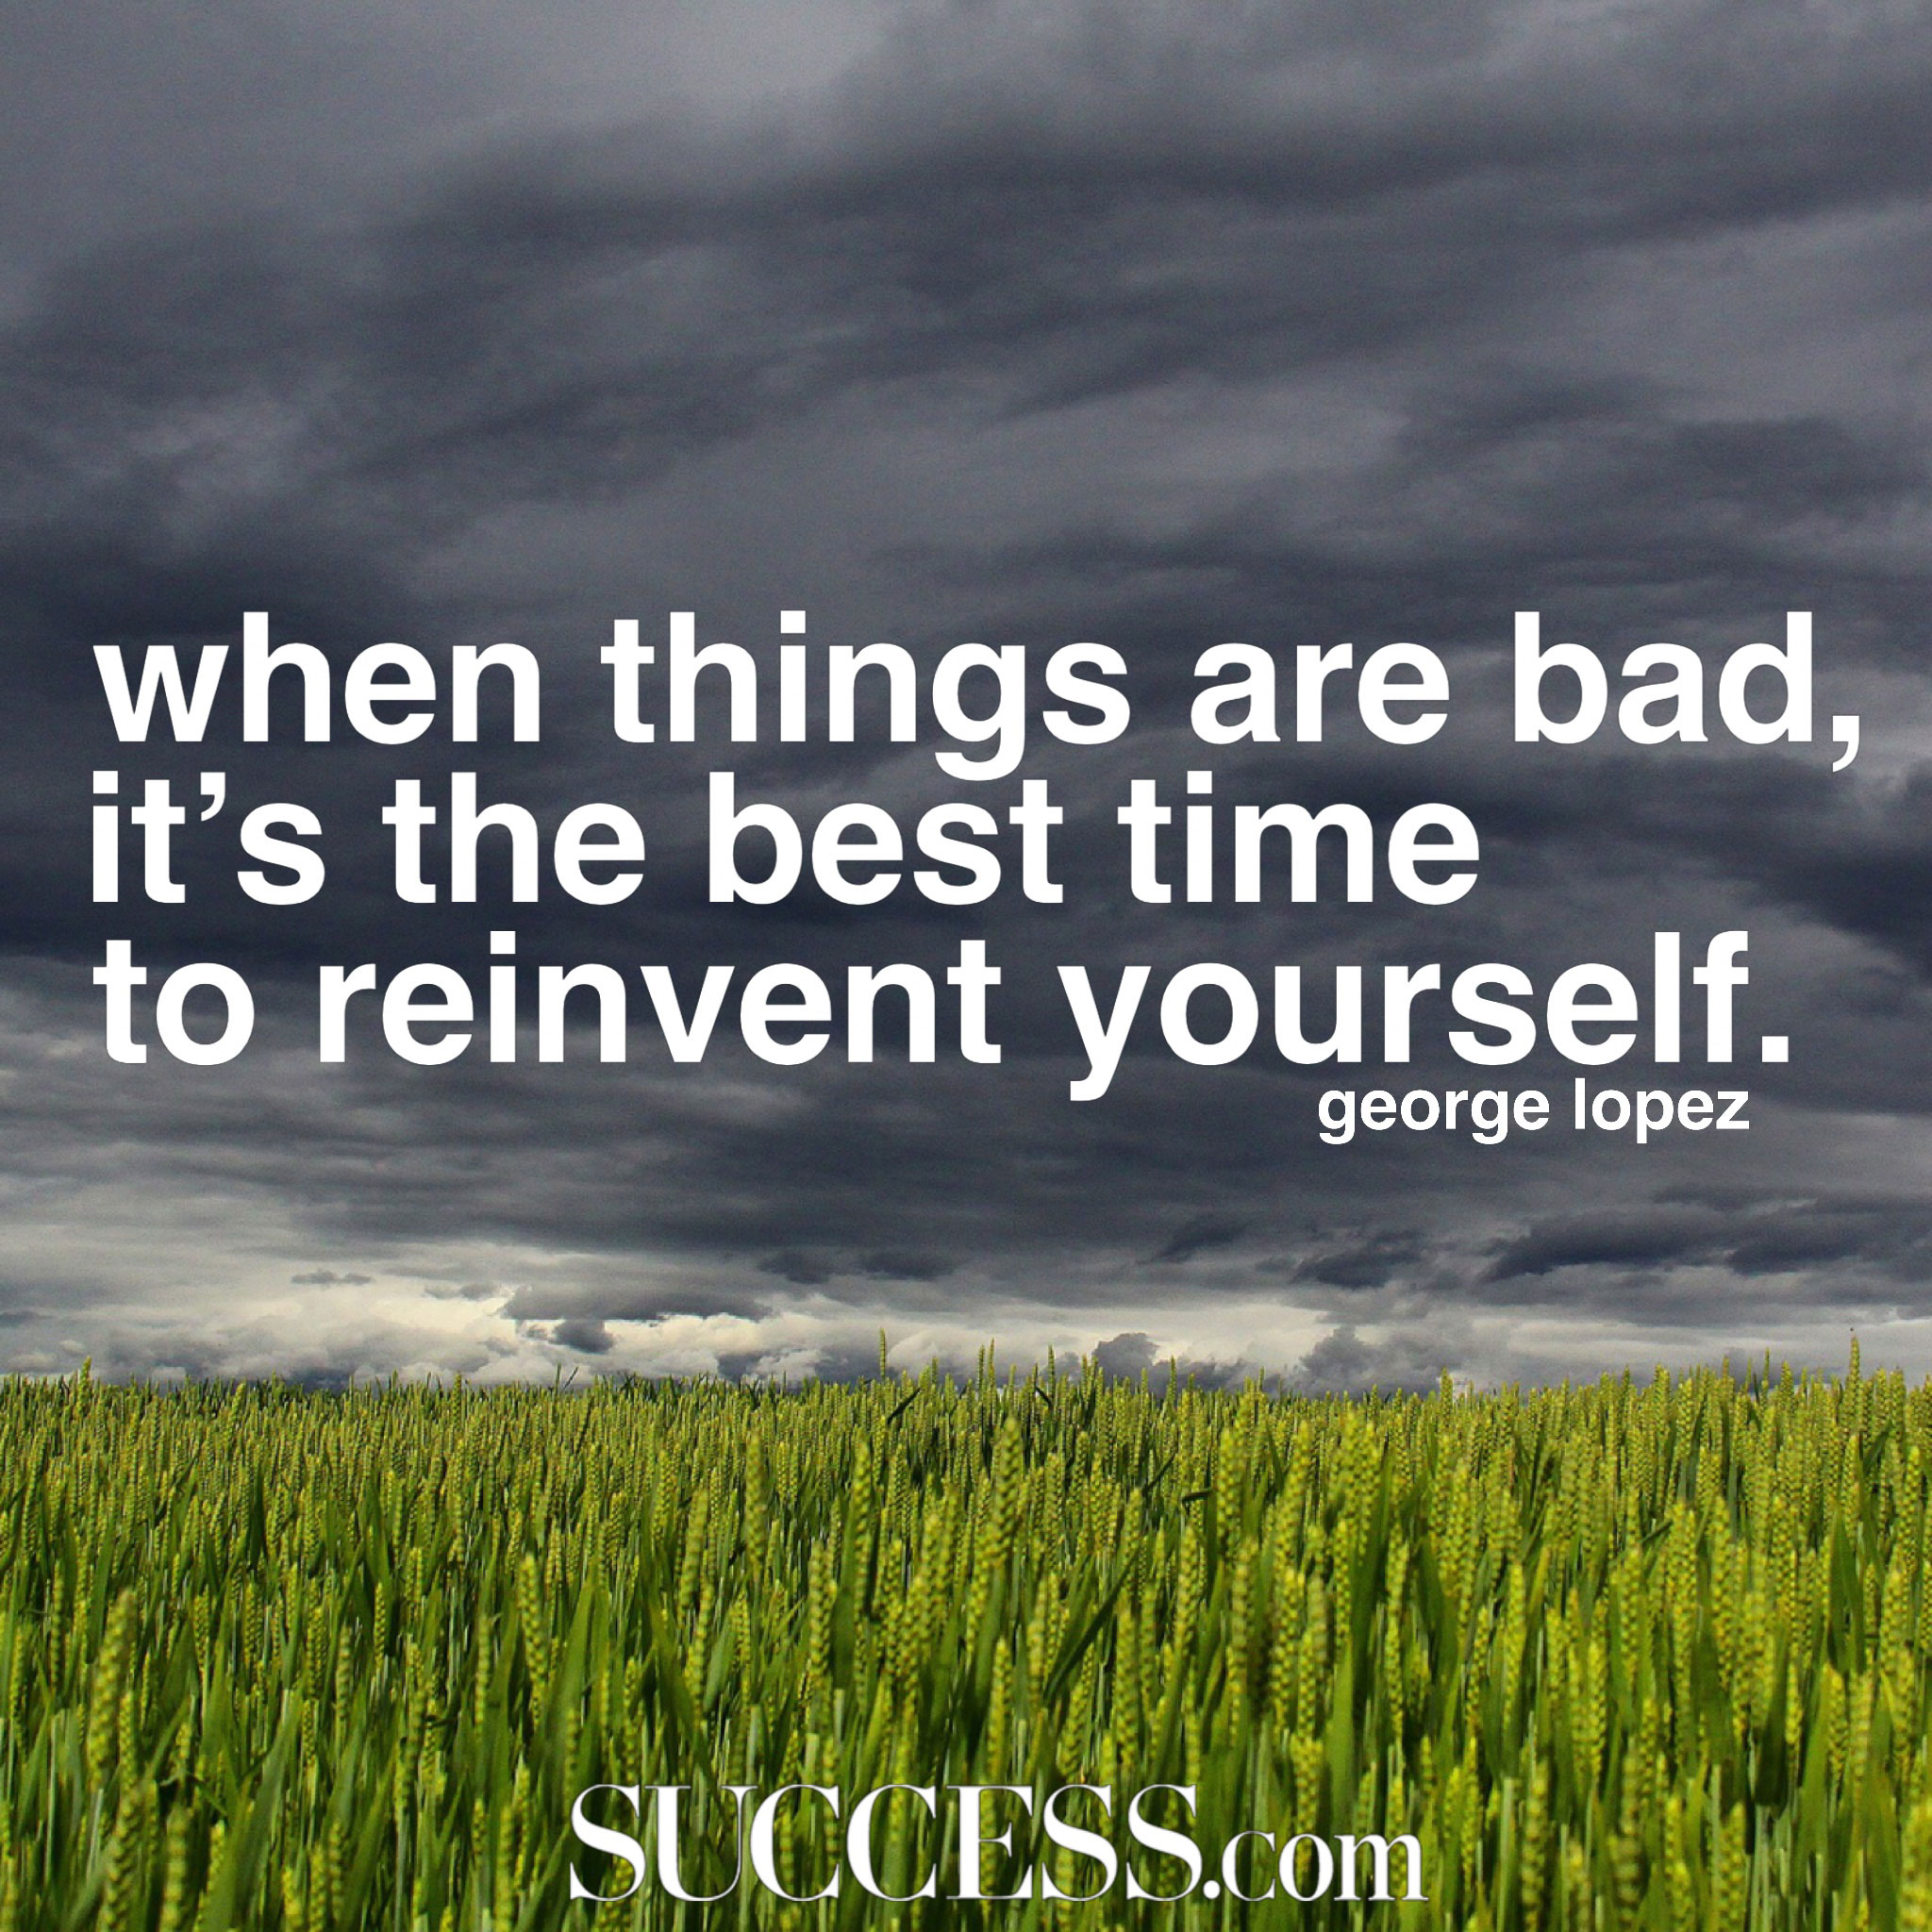 17 Inspiring Quotes About Reinventing Yourself